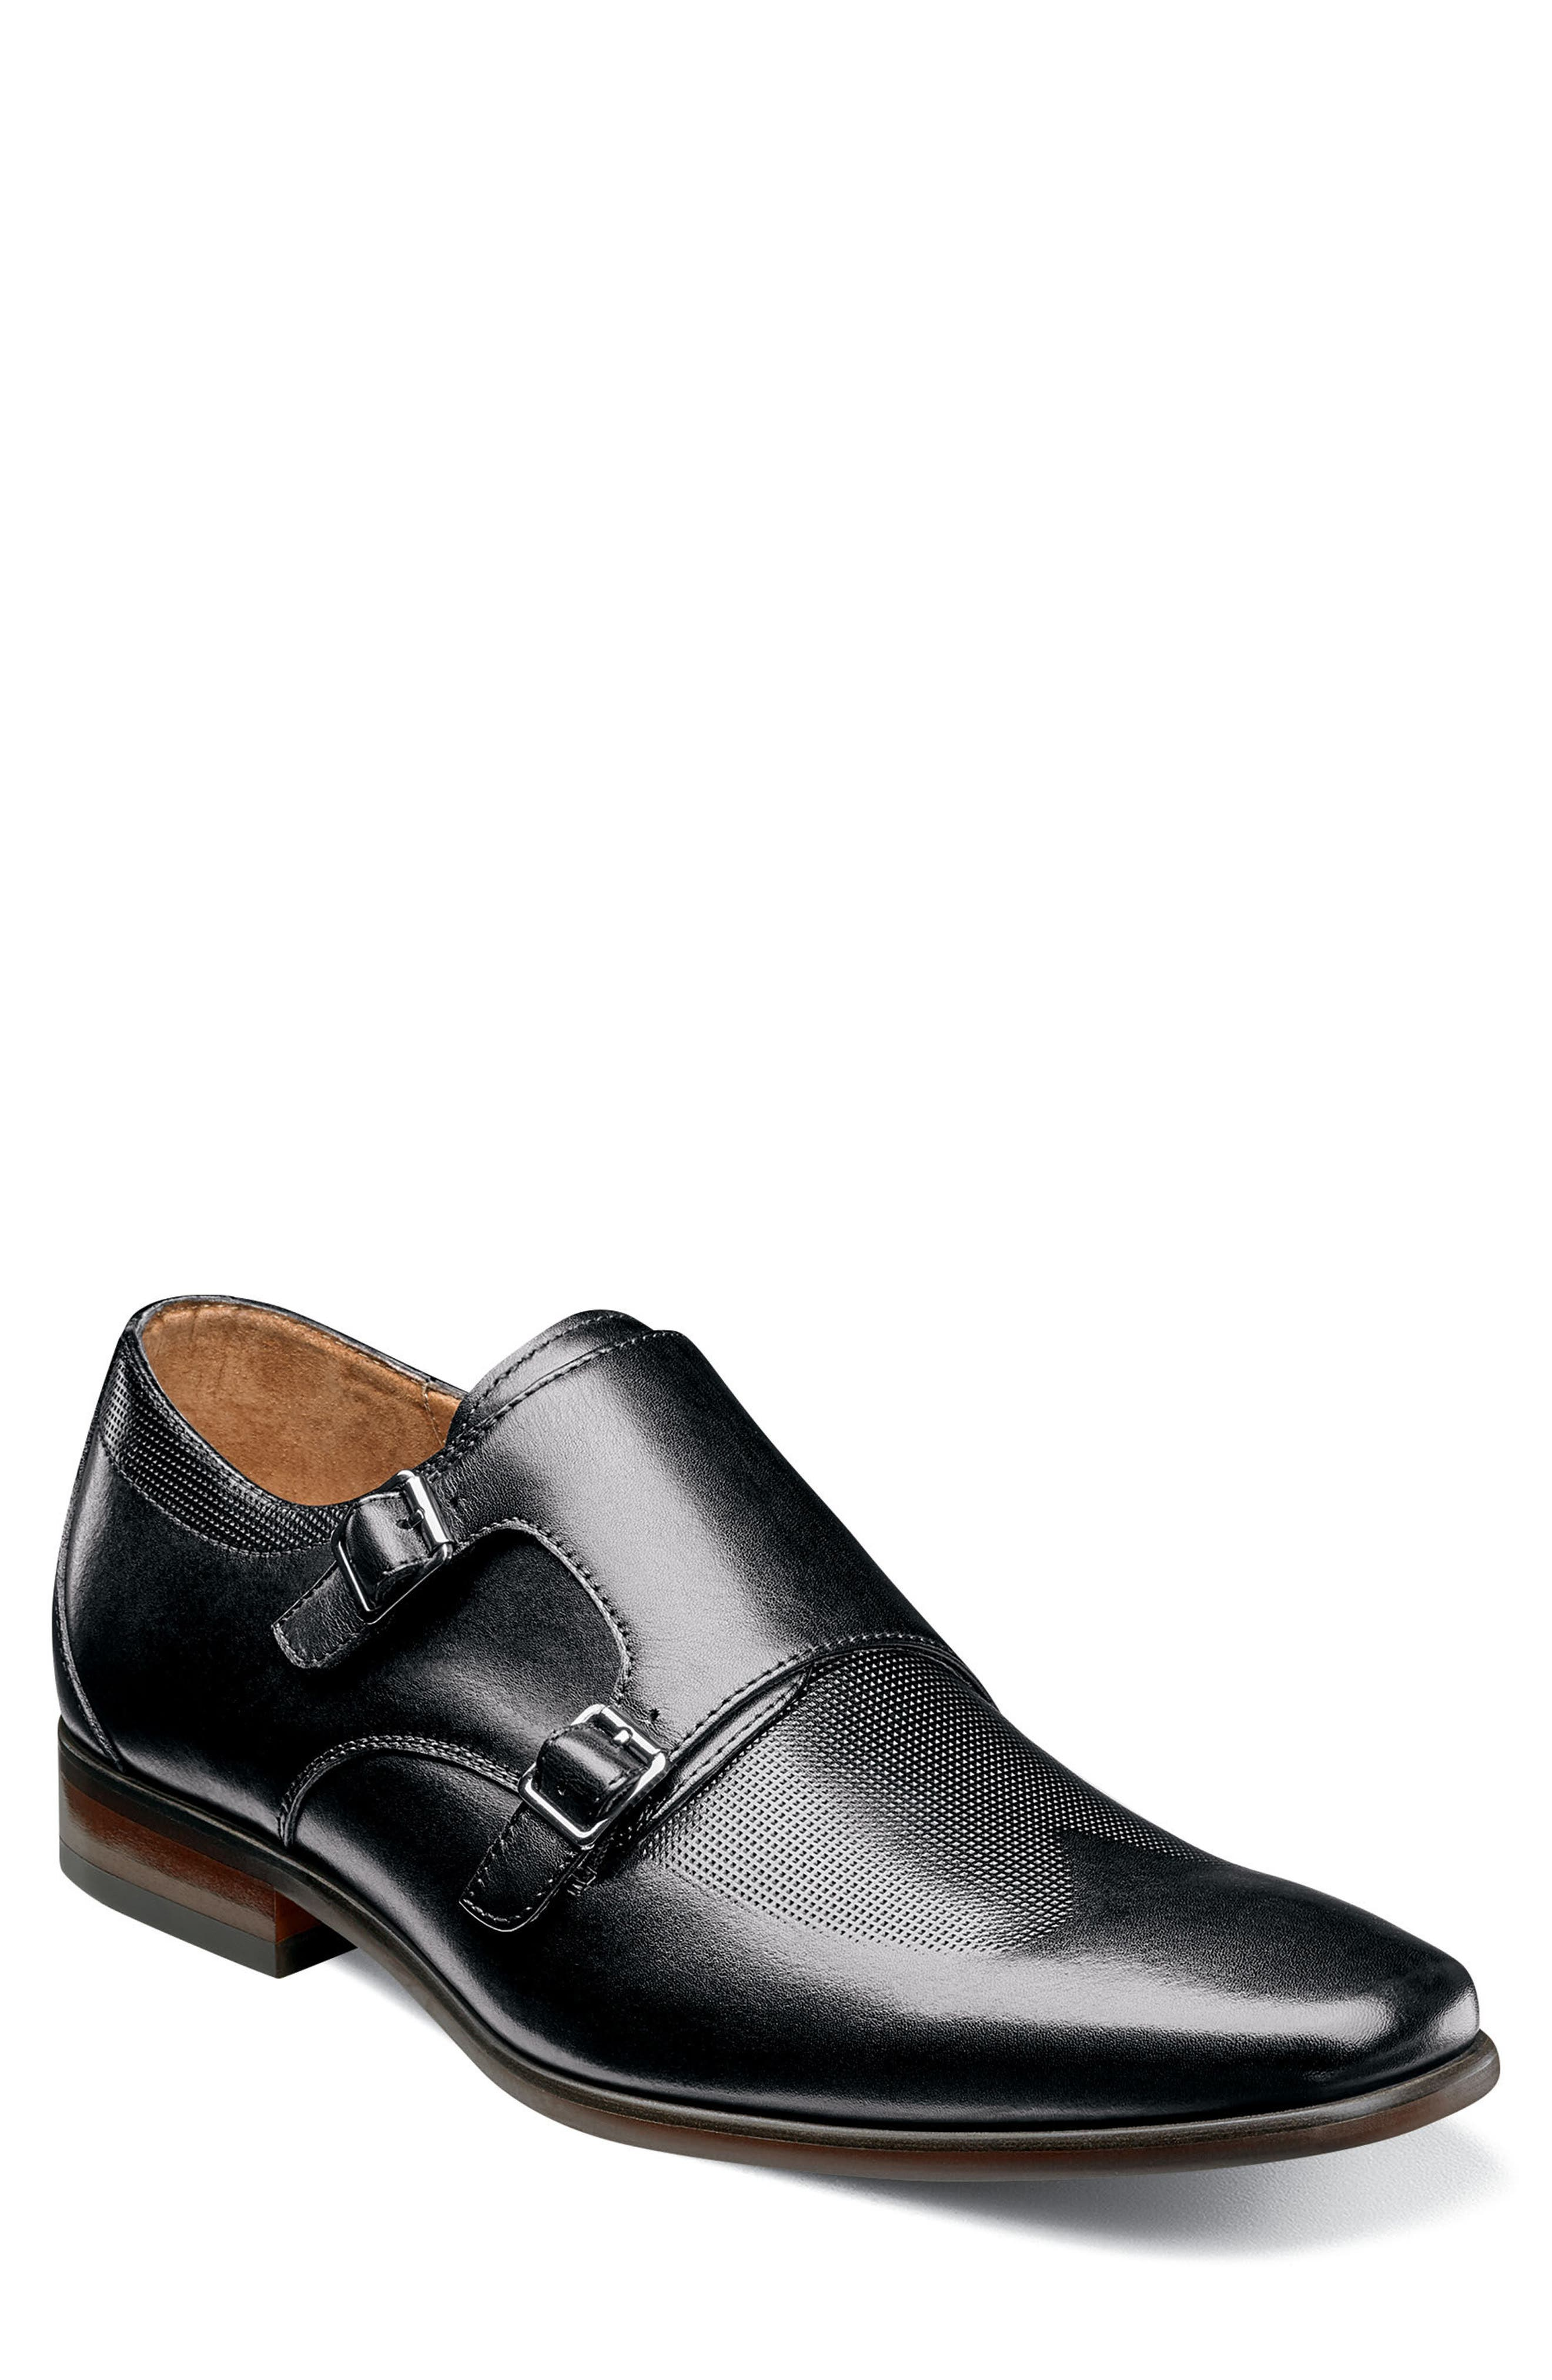 Postino Textured Double Strap Monk Shoe,                             Main thumbnail 1, color,                             BLACK LEATHER